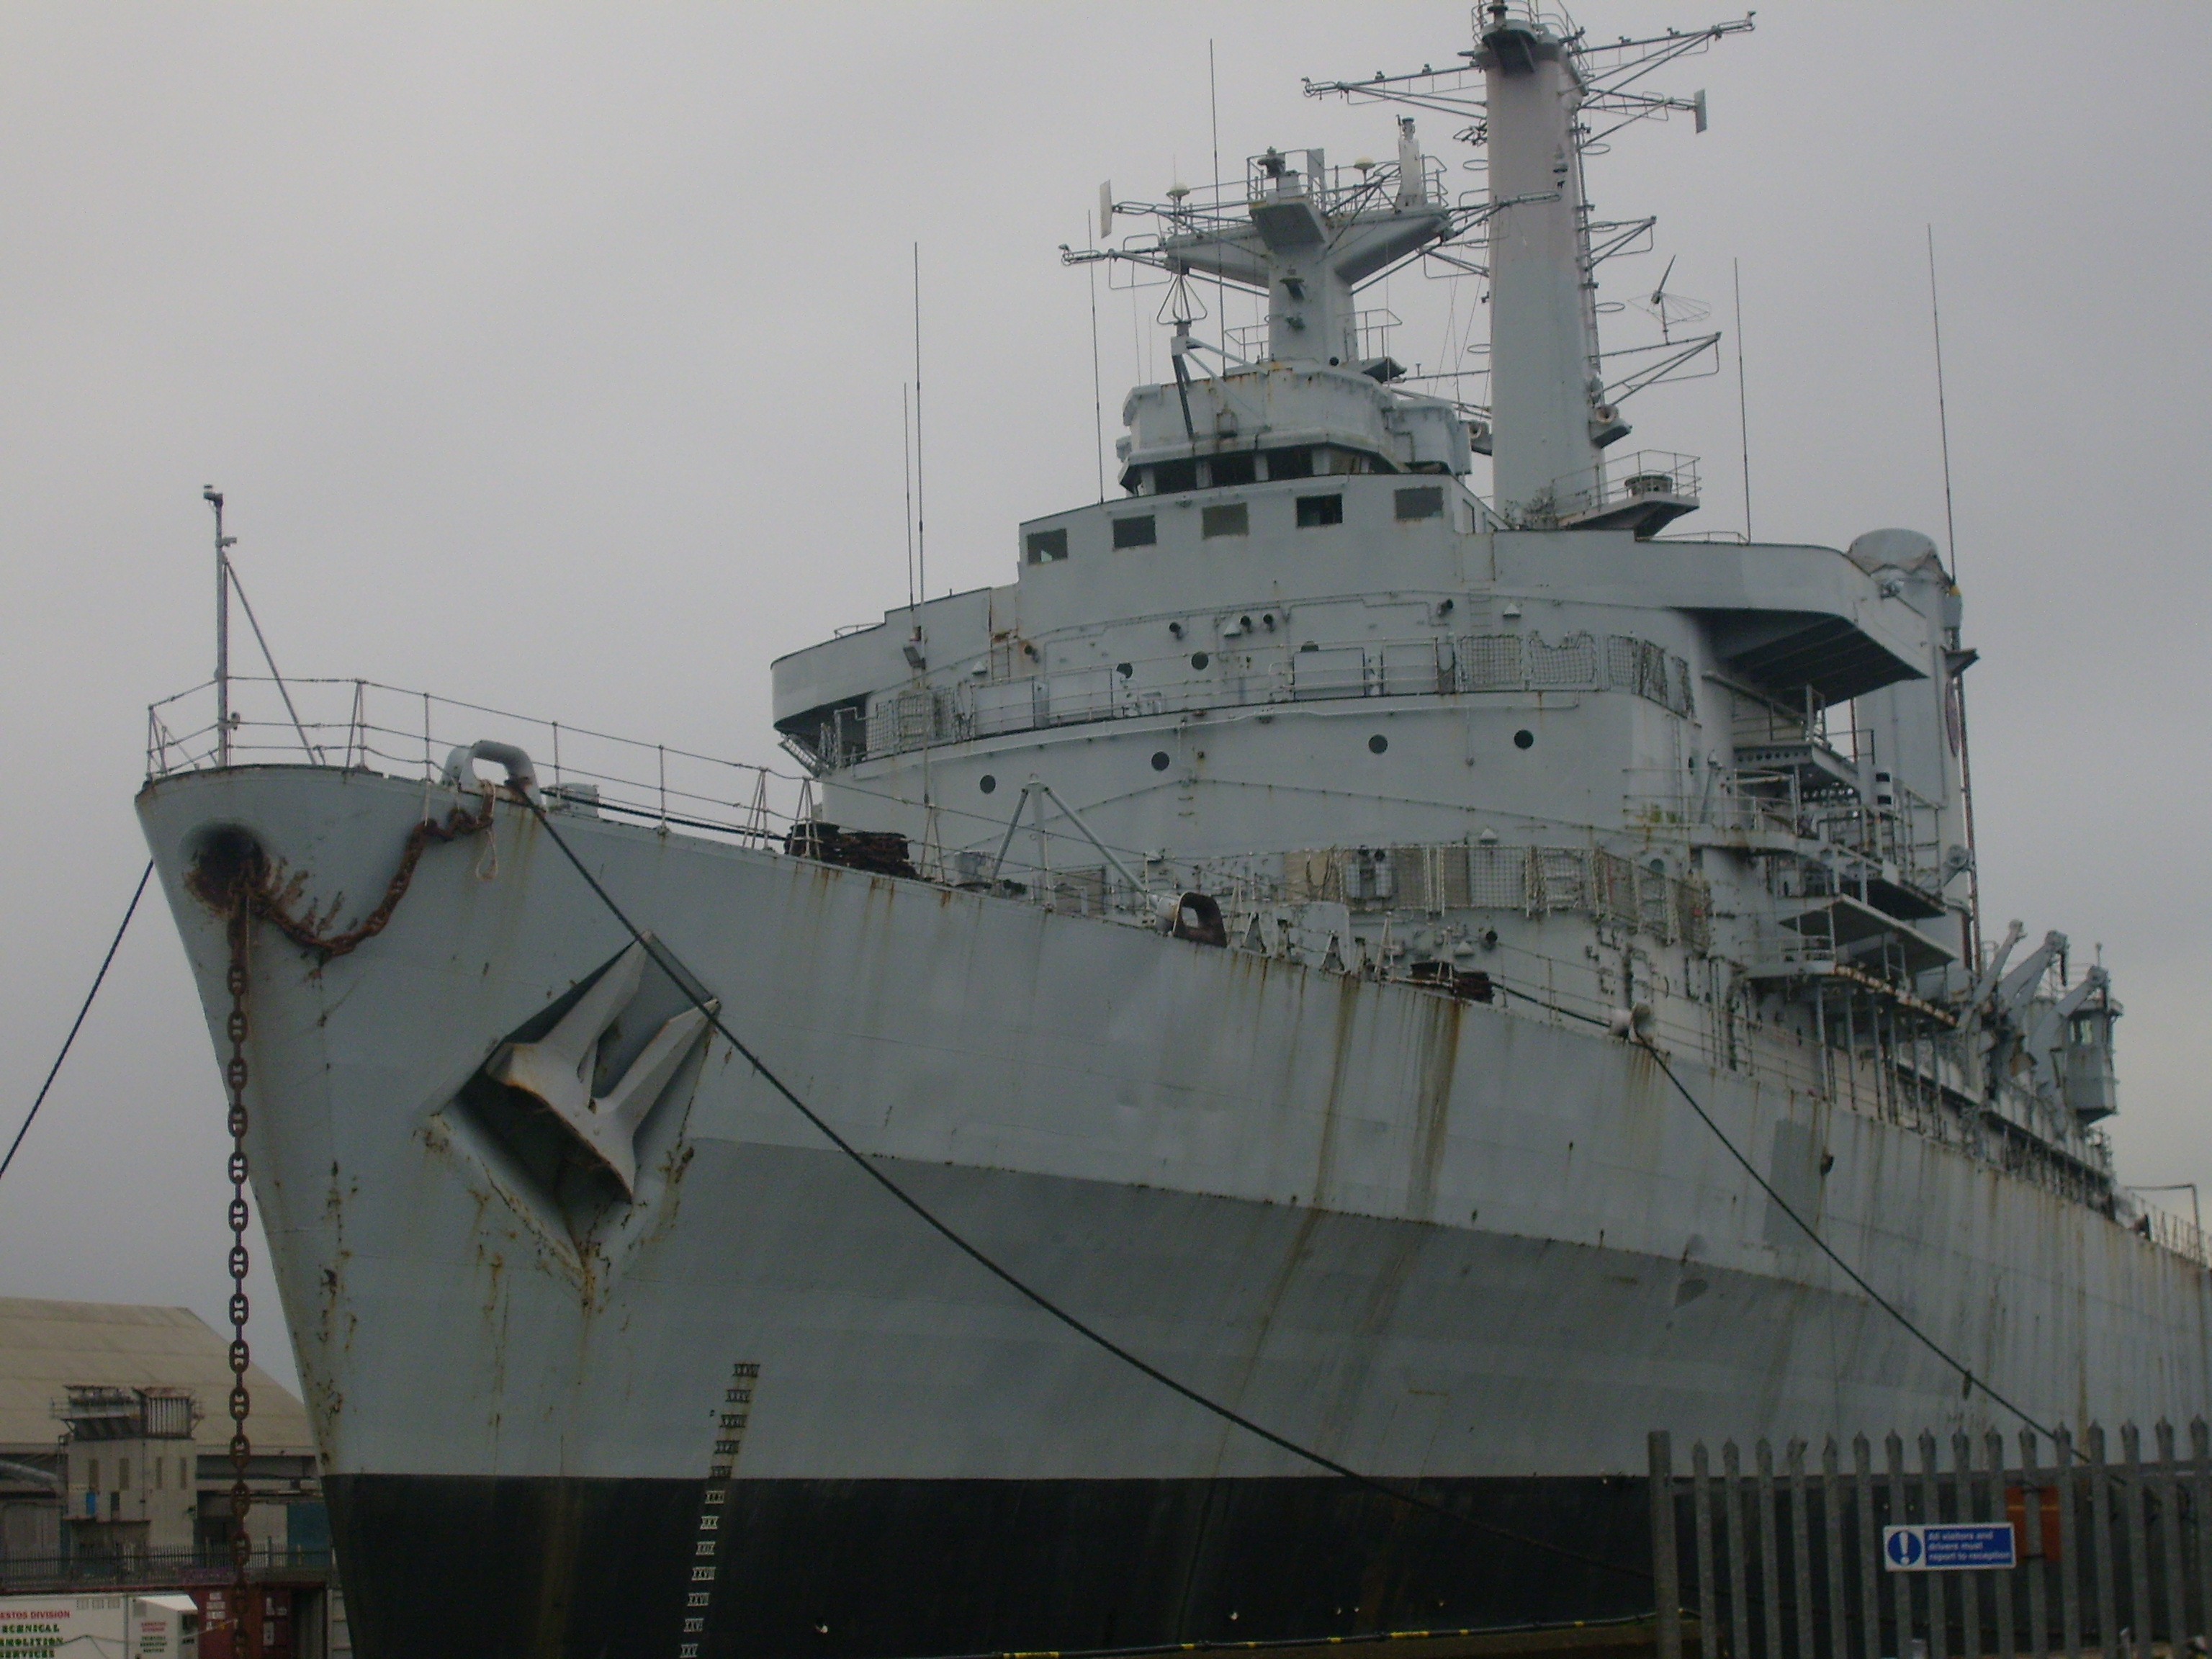 HMS Intrepid 200802